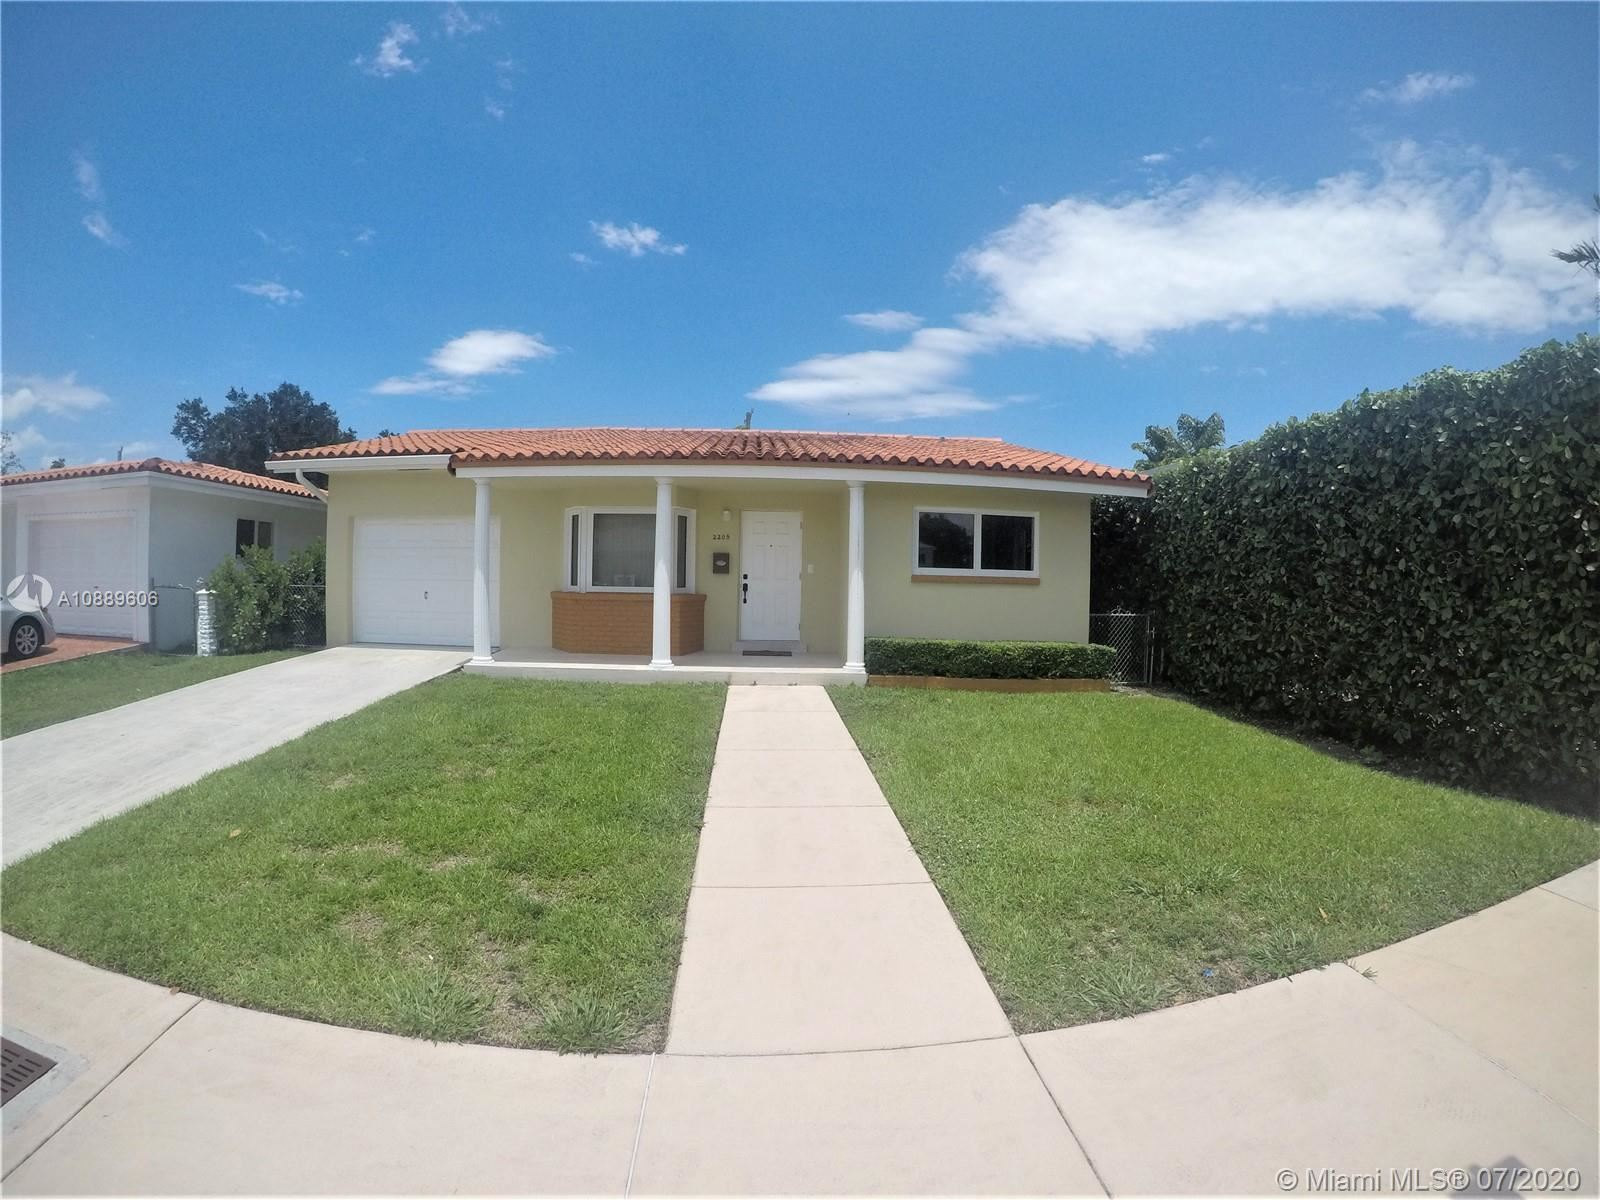 2205 SW 57th Ave, Coral Gables, FL 33155 - #: A10889606